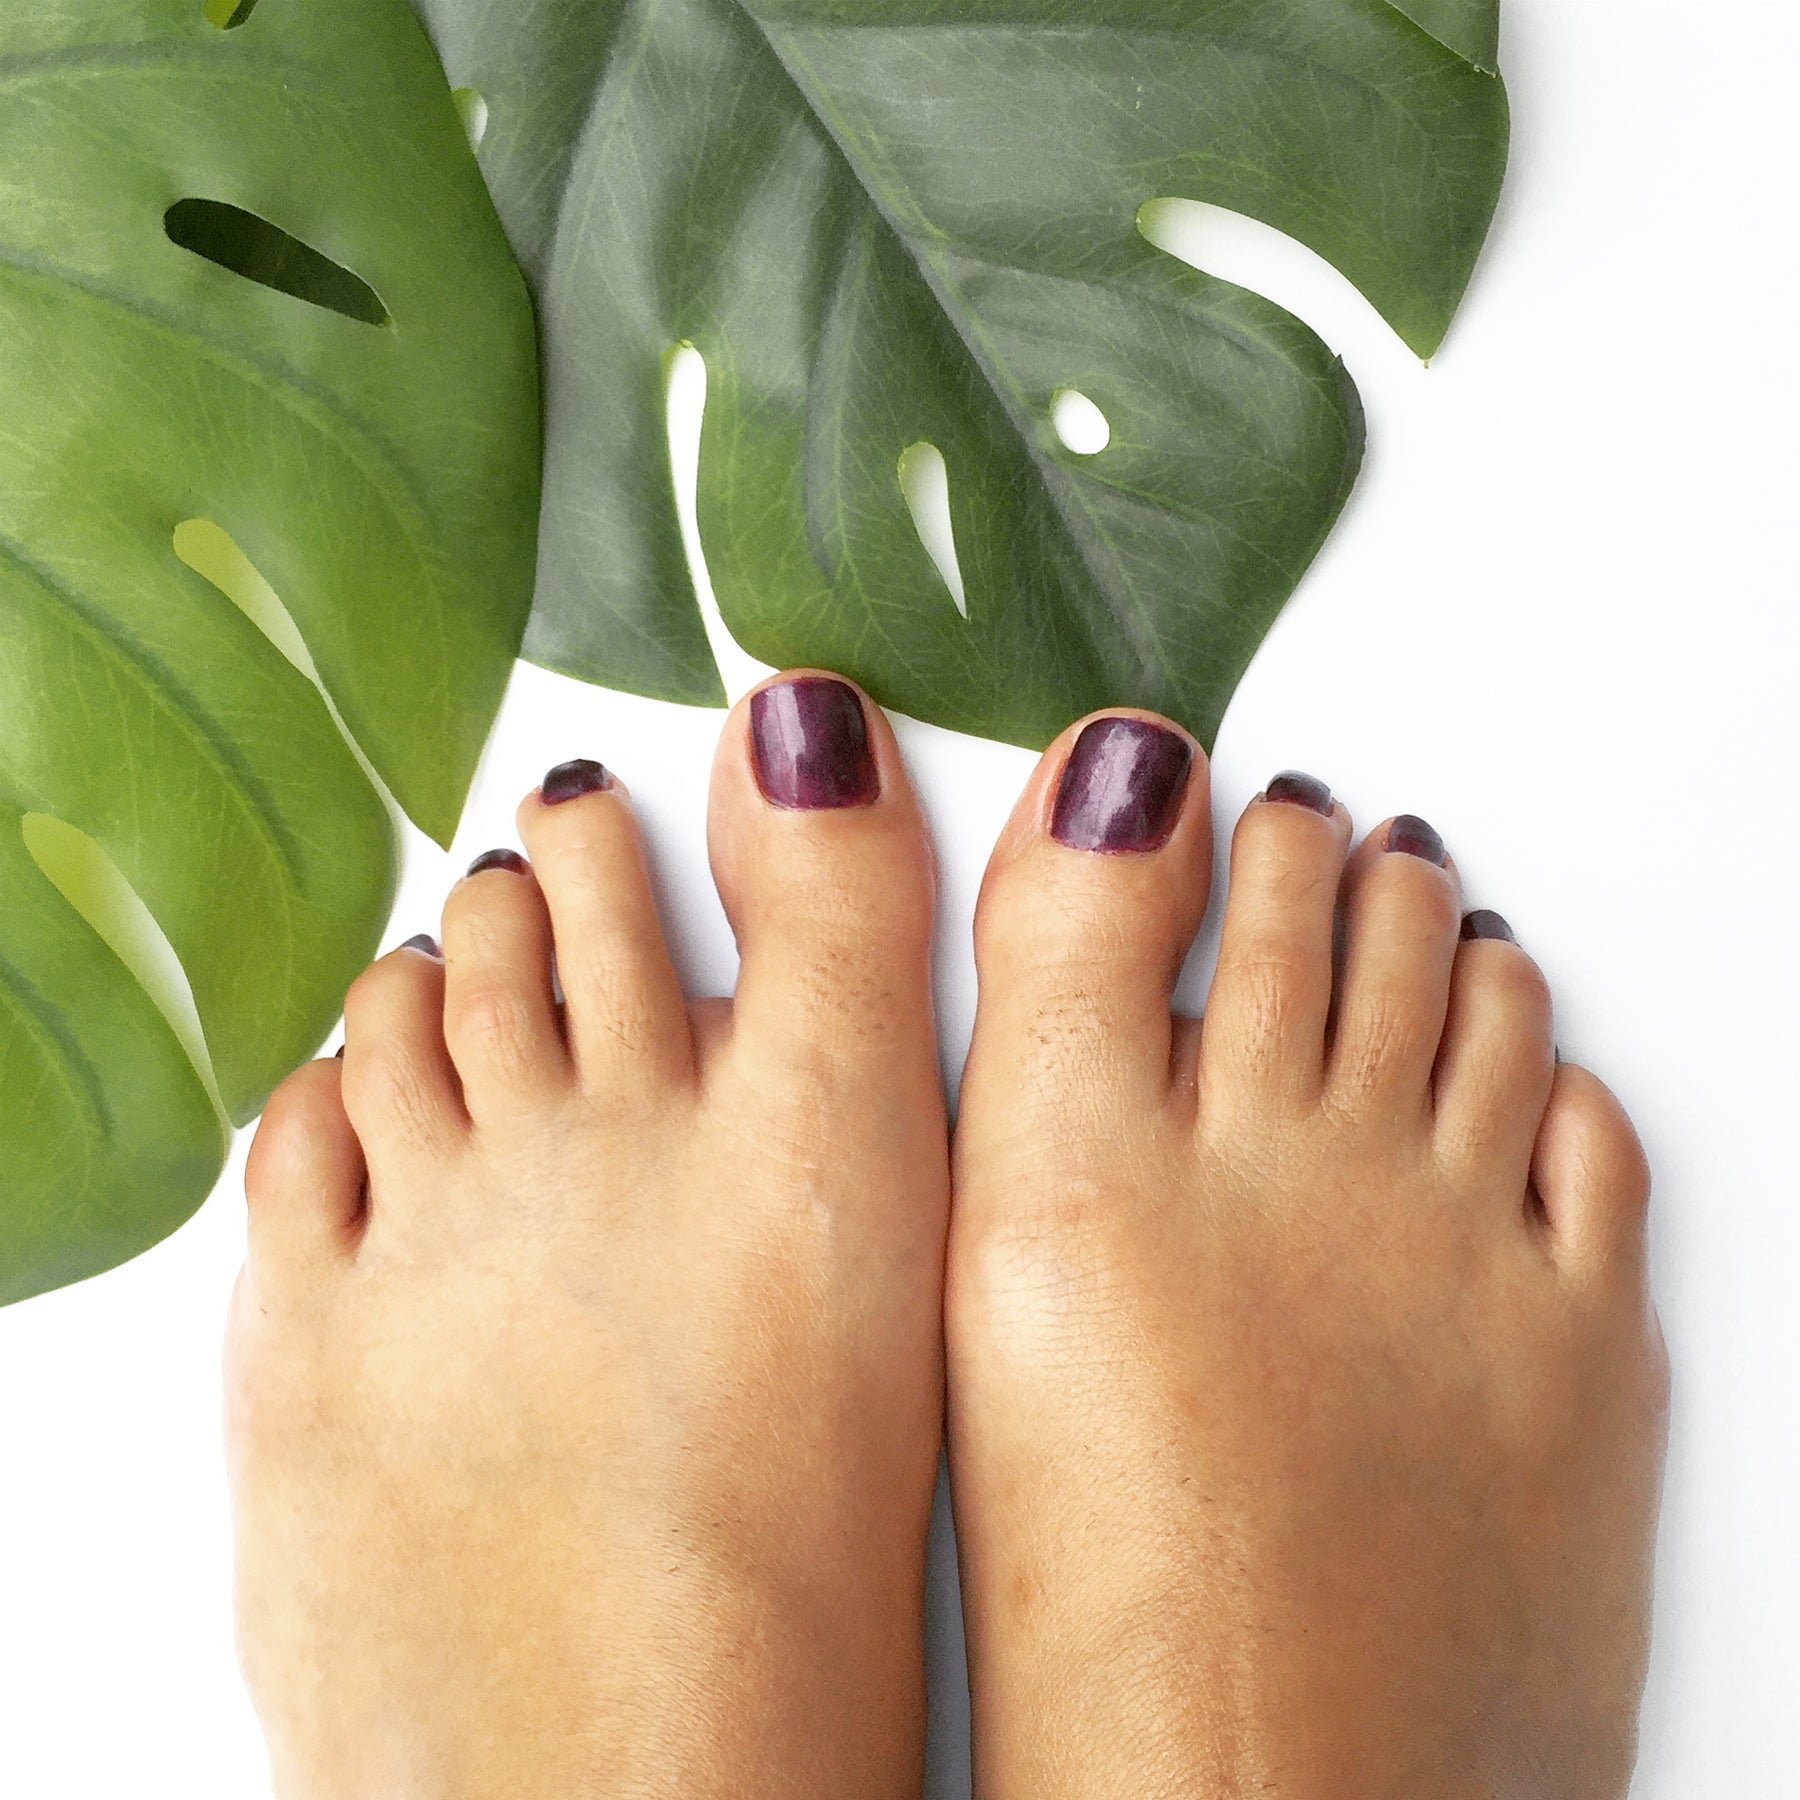 IT'S NOT SALAD, JUST A PEDICURE